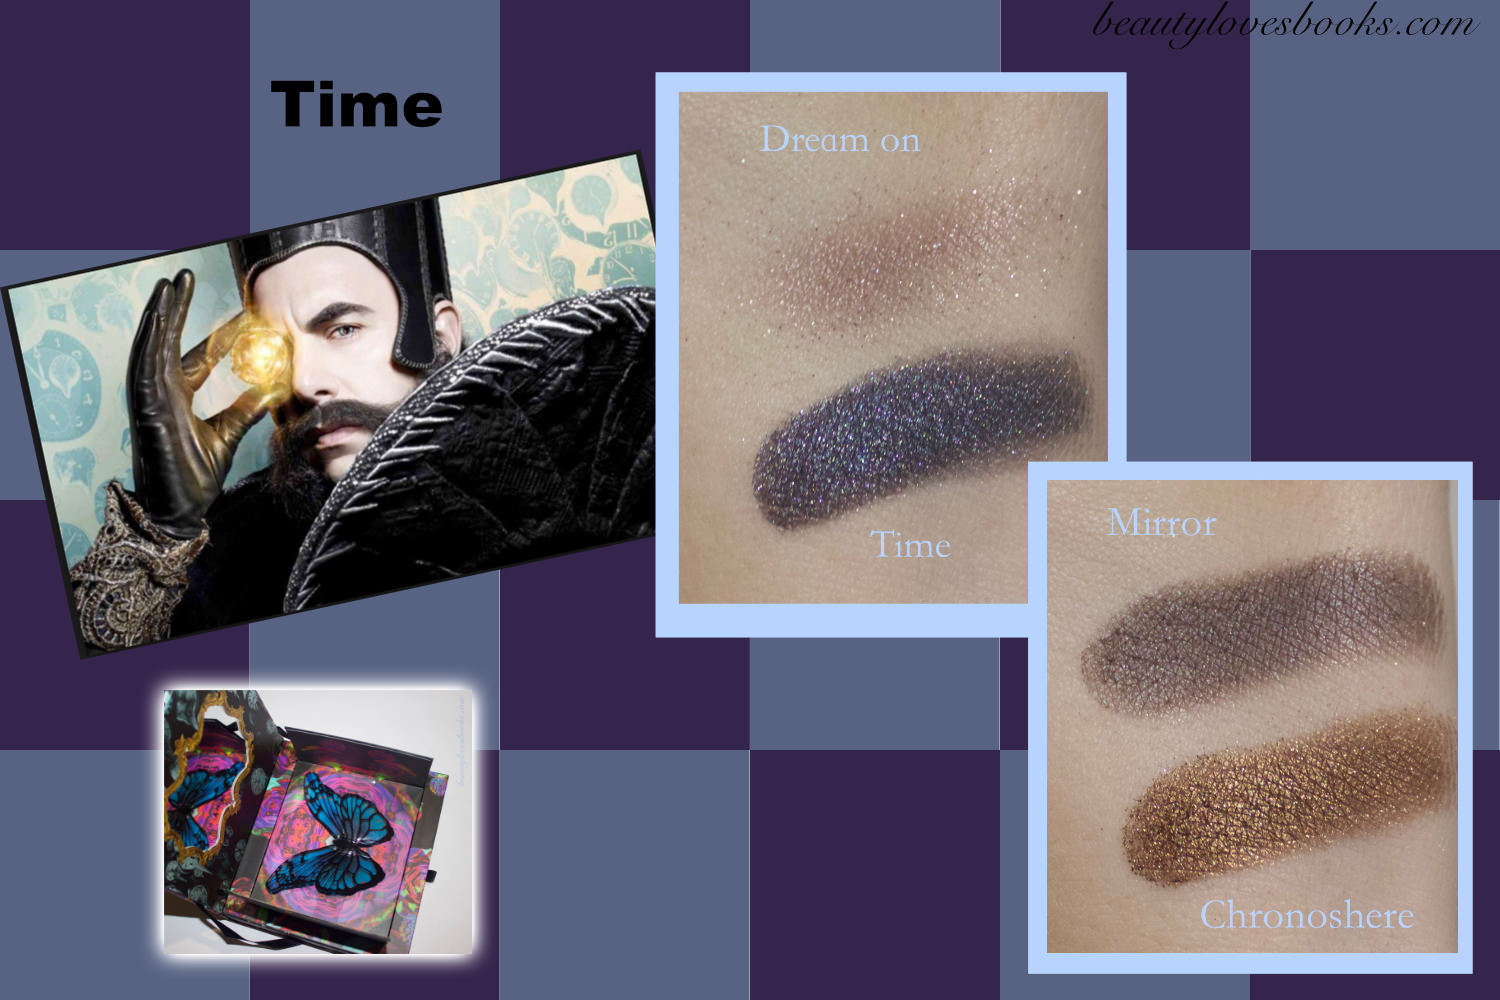 Urban Decay X Alice through the looking glass eyeshadow palette swatches, Time makeup look